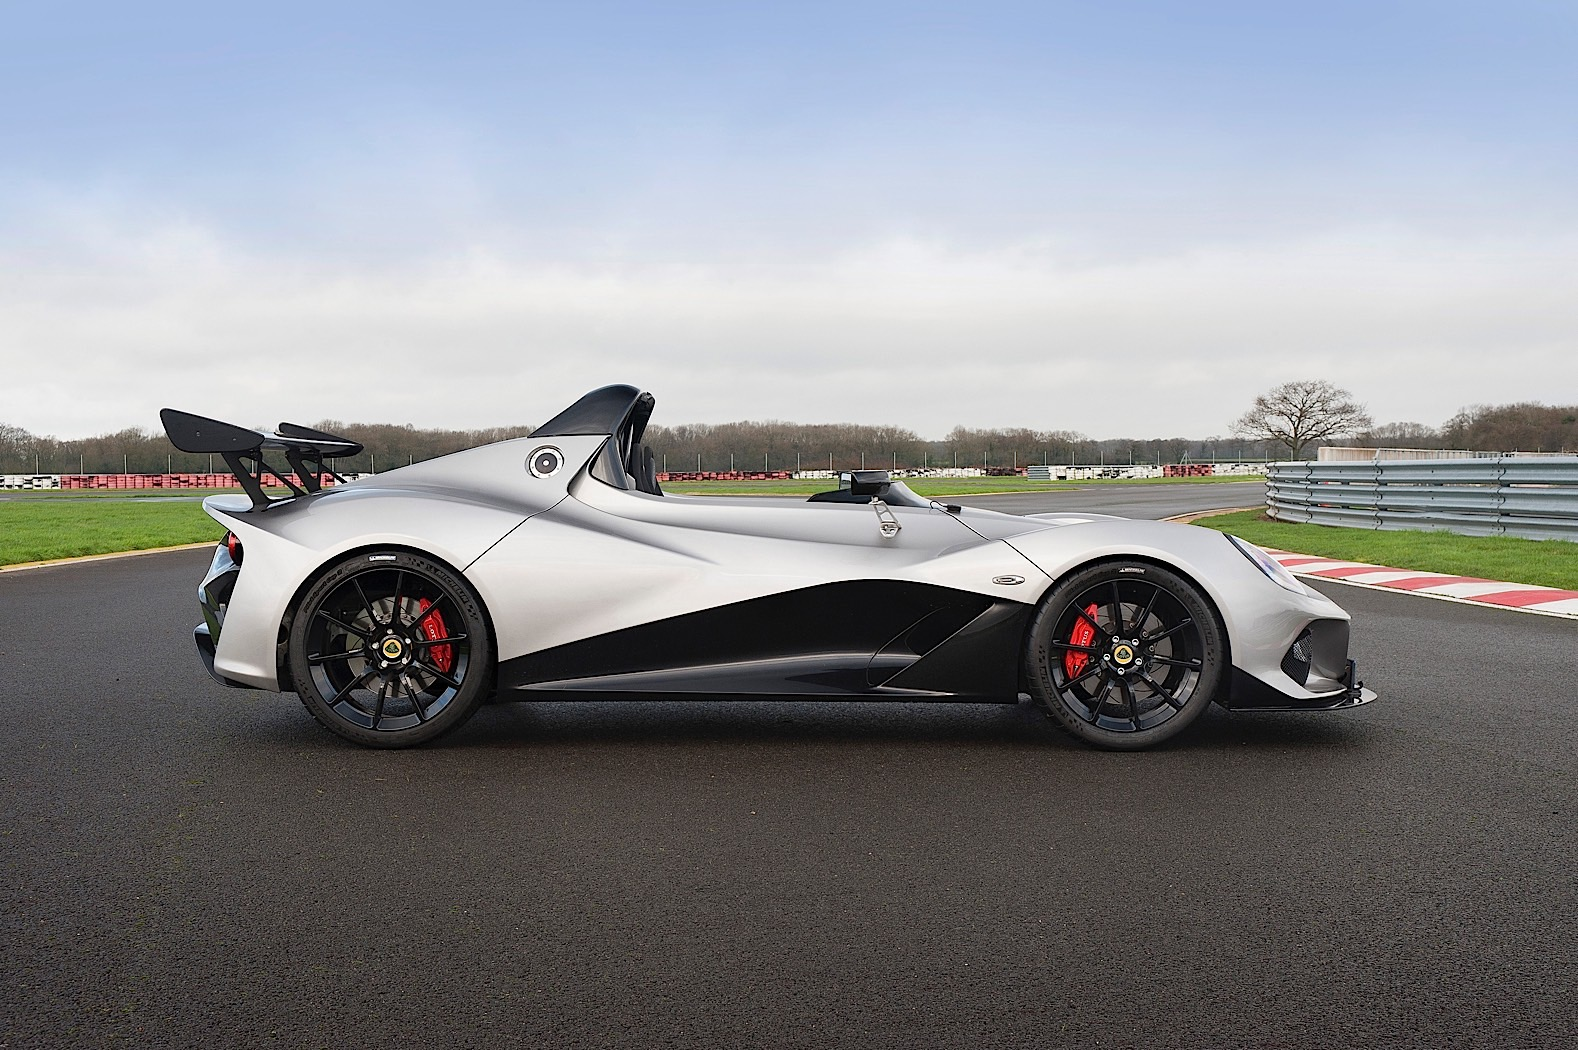 behold the lotus 3 eleven is going into production and will soon hit the streets autoevolution. Black Bedroom Furniture Sets. Home Design Ideas